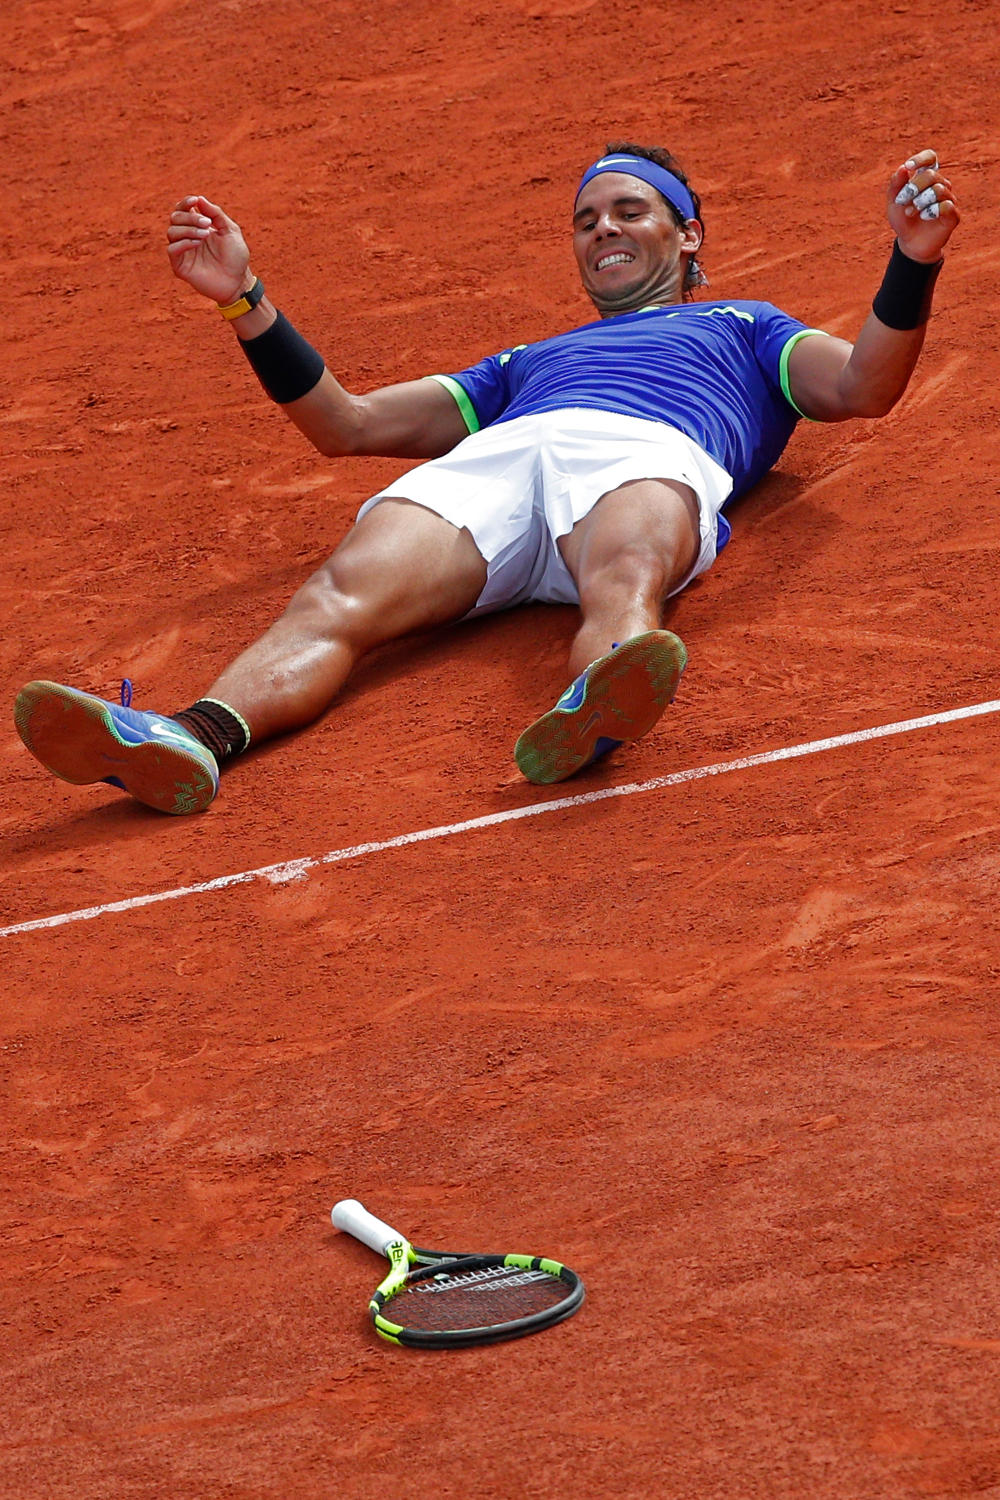 Rafael Nadal French Open 2017 Tennis tall